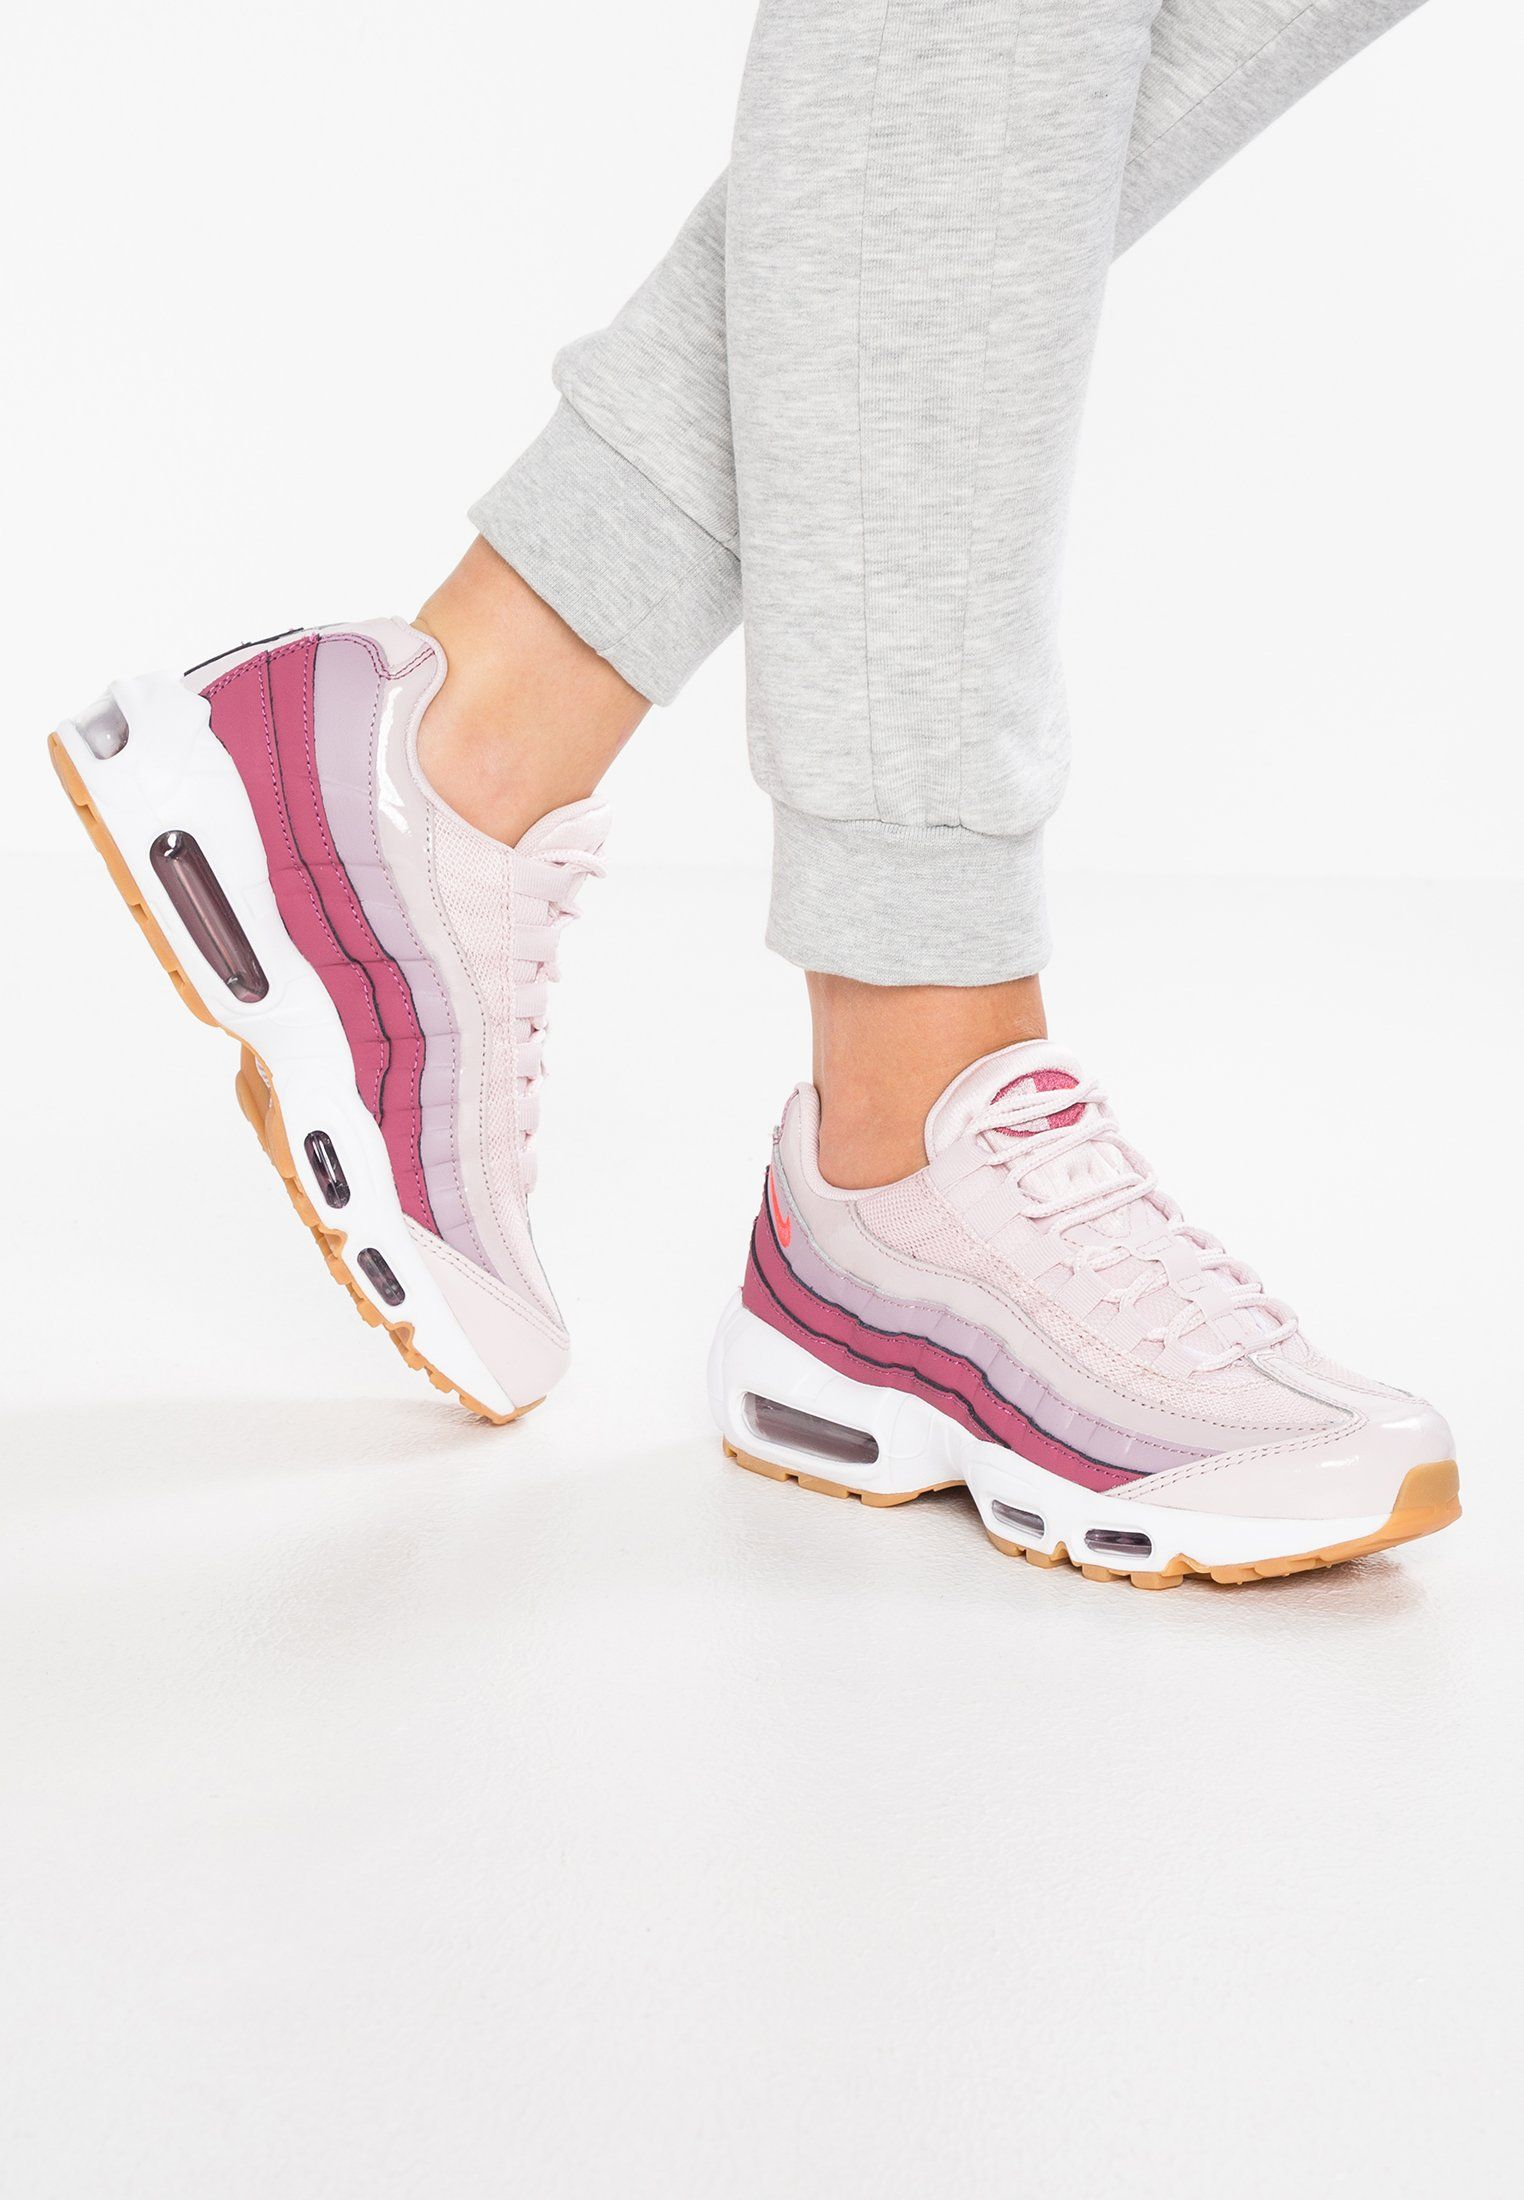 cheap for discount 7a87a 985d0 Nike Sportswear AIR MAX 95 - Baskets basses - barely rose hot punch vintage  wine white elemental rose light brown - ZALANDO.FR